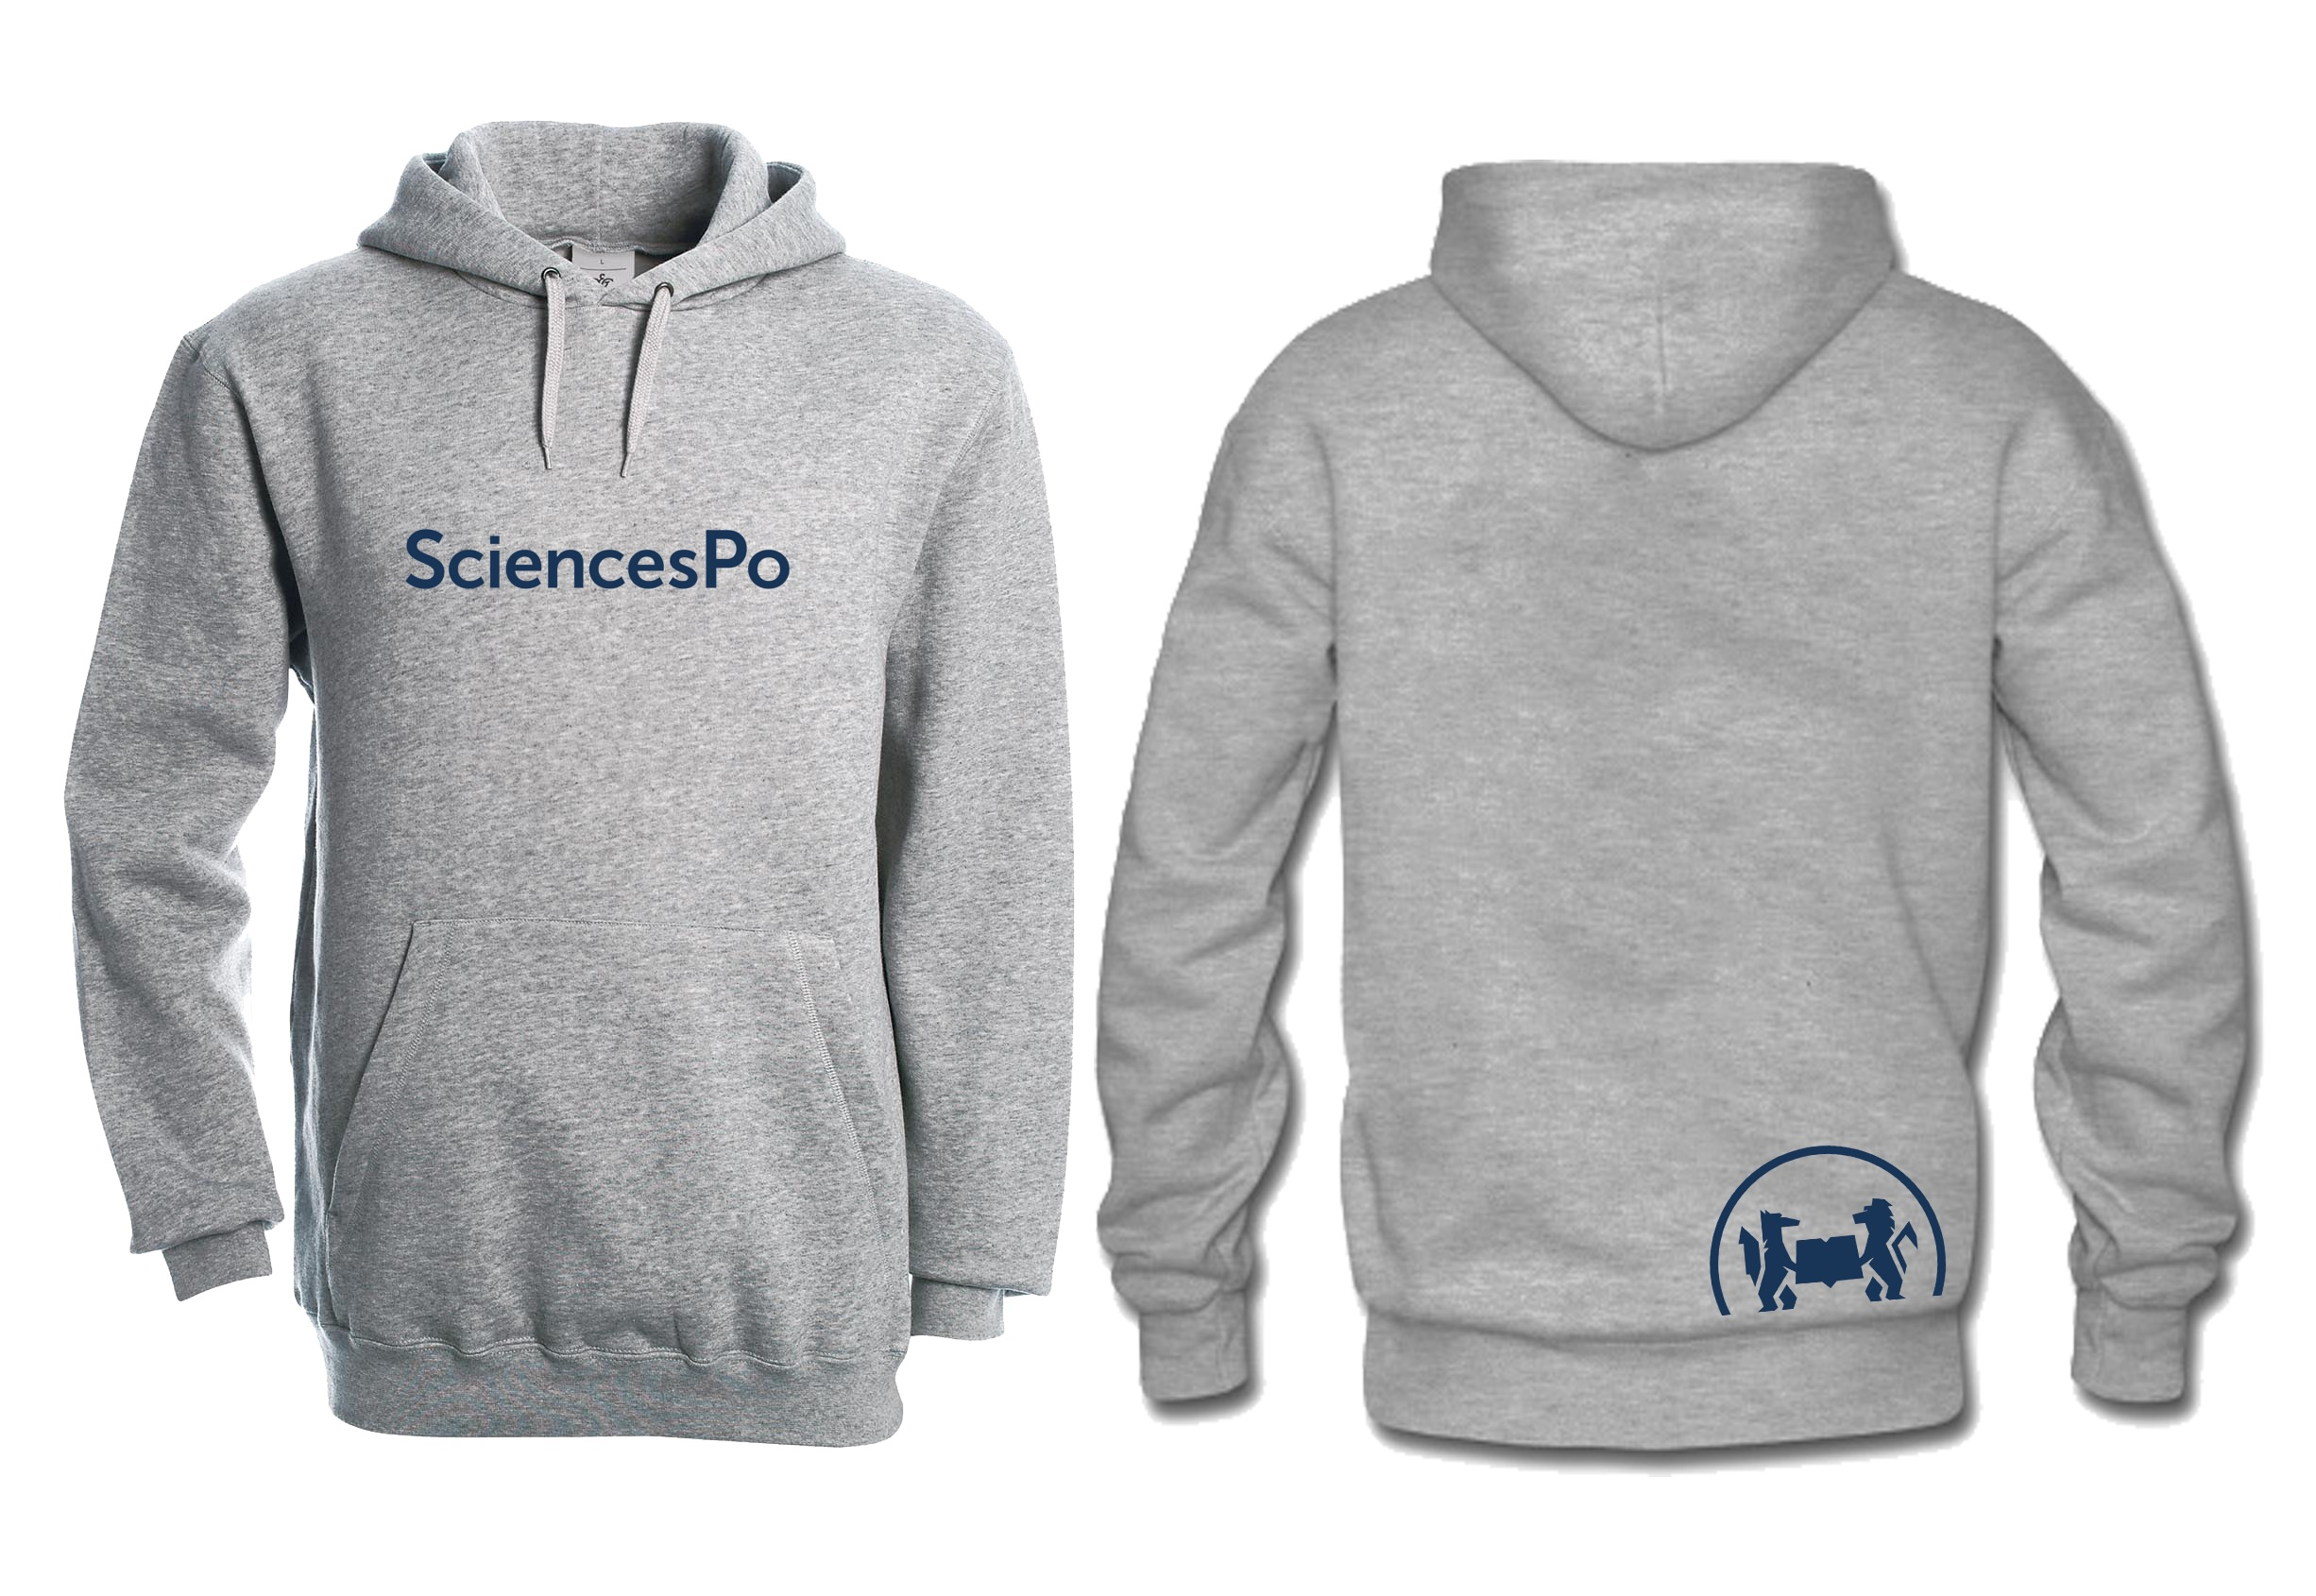 SWEAT (9-11 ANS) EXTRA EXTRA SMALL GRIS SCIENCES PO UNISEXE